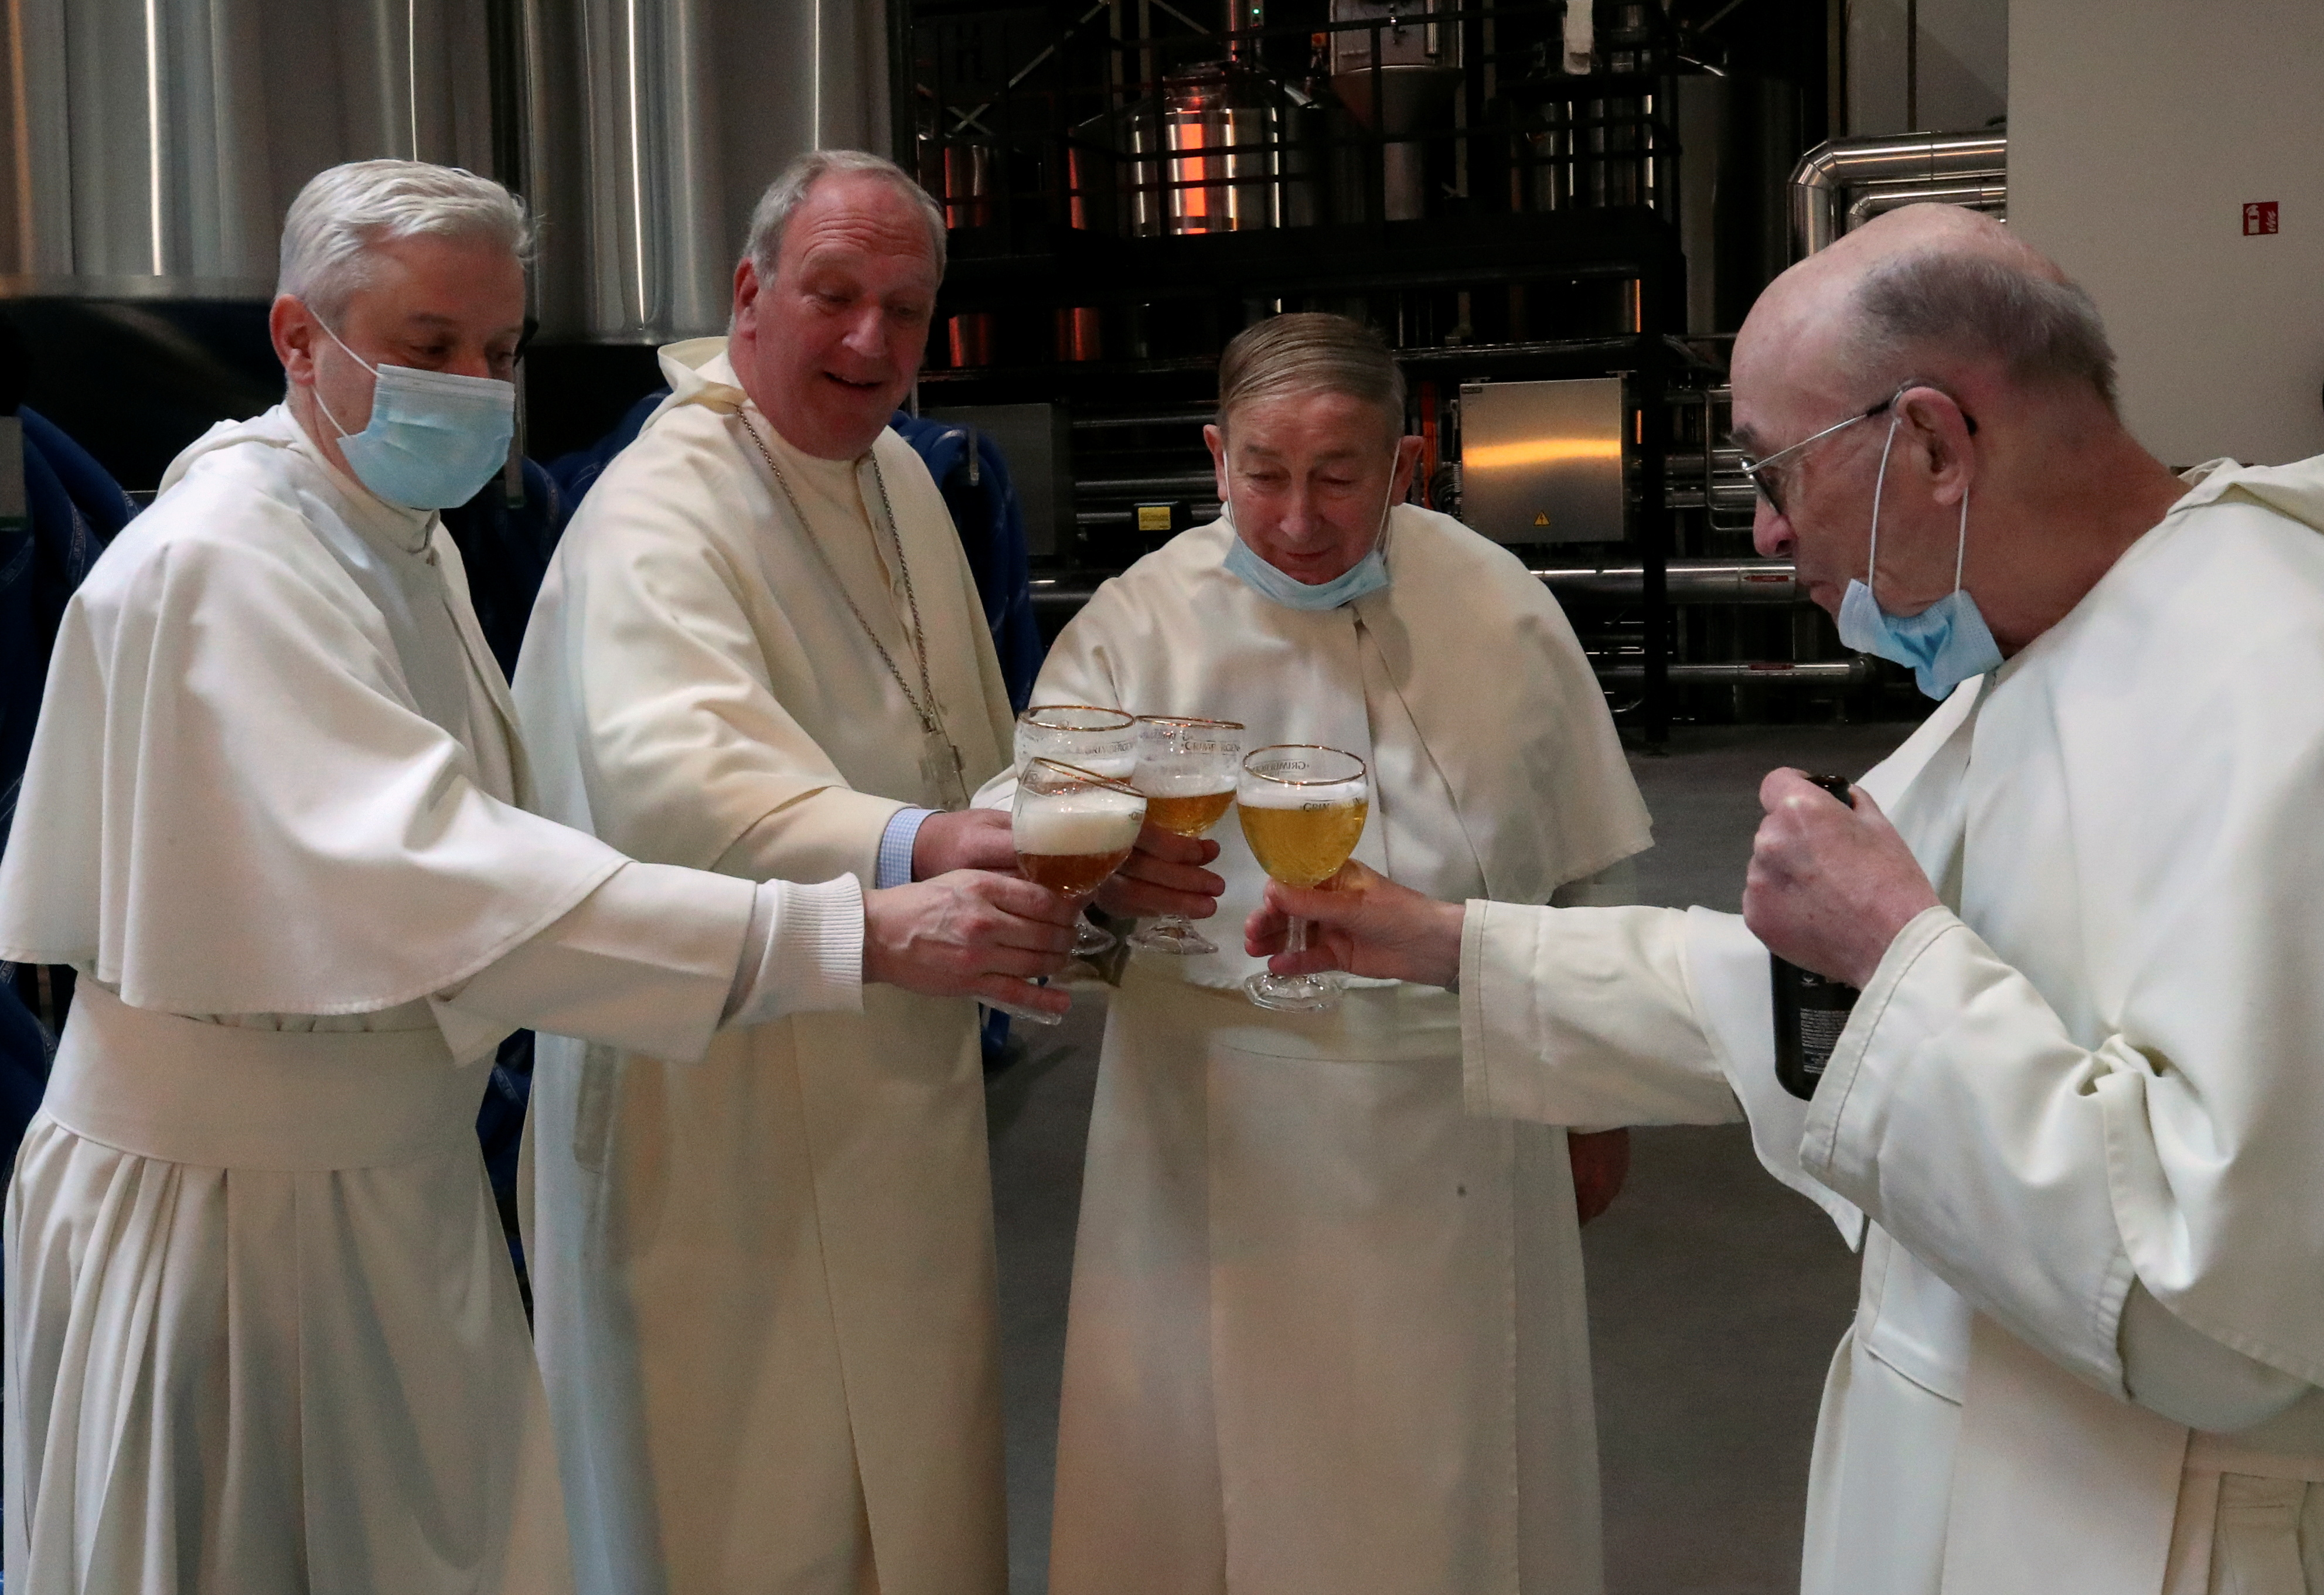 Prior Johan Goossens, abbot Erik De Sutter, father Stefaan Verstraeten and father Ton Smith toast after blessing beer tanks at the Belgian Abbey of Grimbergen, which returns to brewing after a break of more than 200 years with a new microbrewery in Grimbergen, Belgium May 26, 2021. REUTERS/Yves Herman